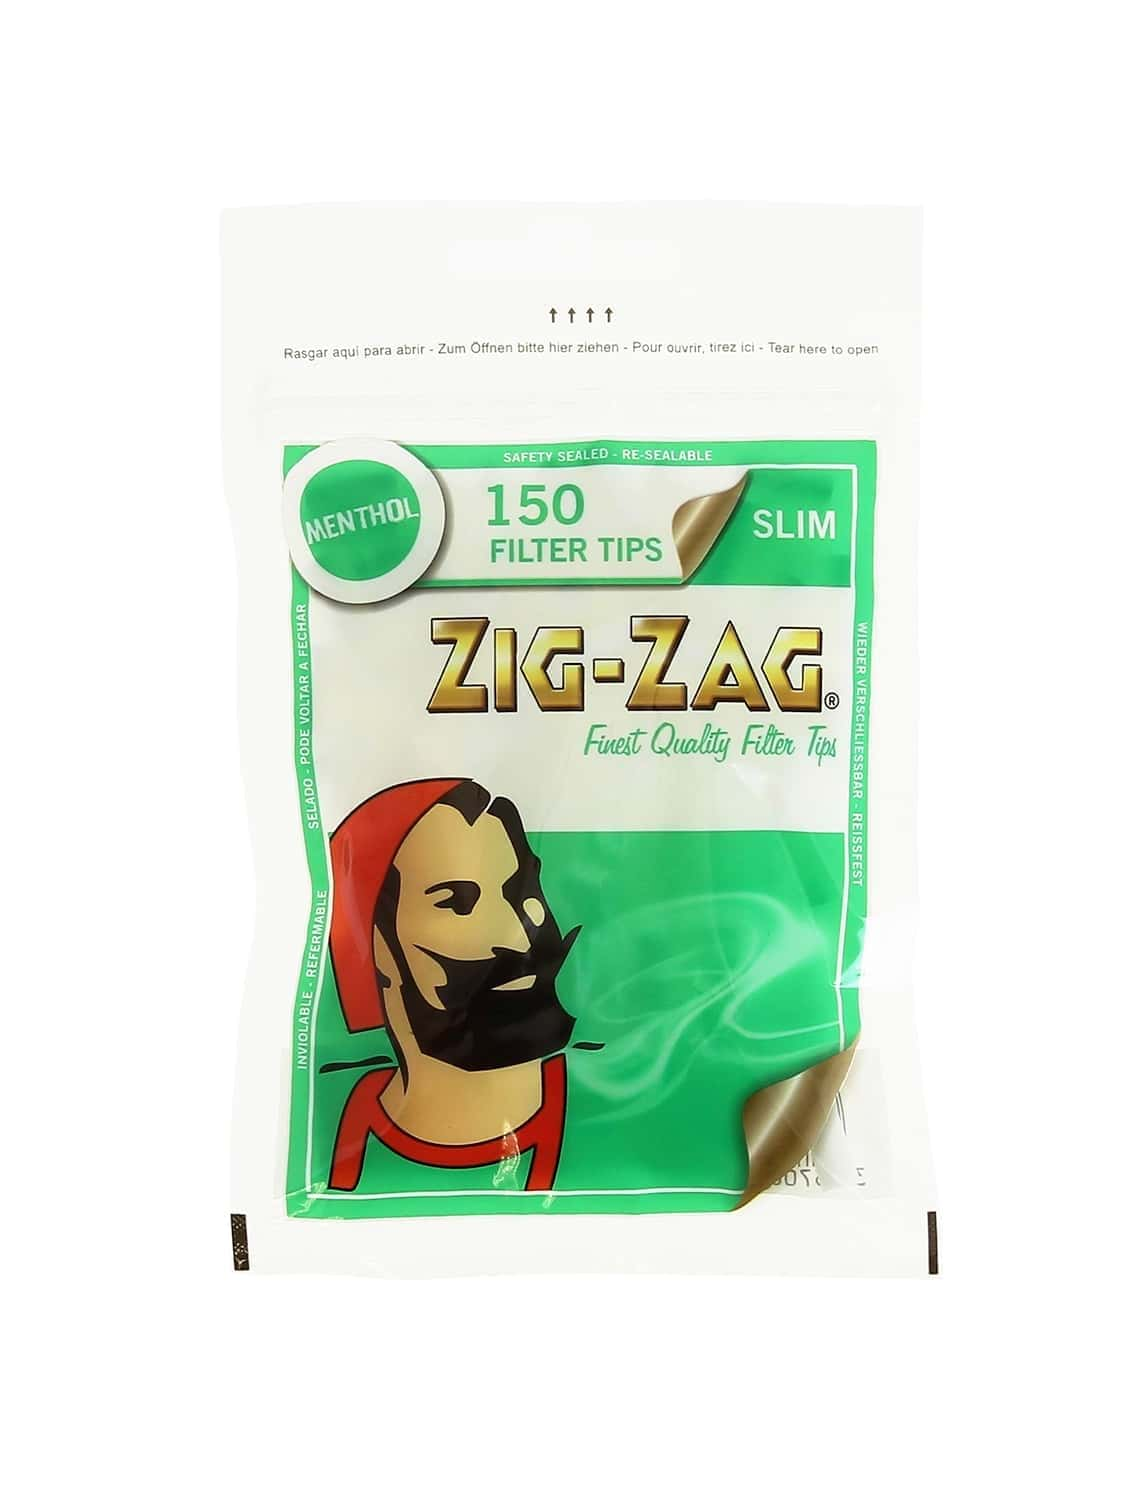 Zig-Zag Slim Filter 150 pieces - Methol Flavour